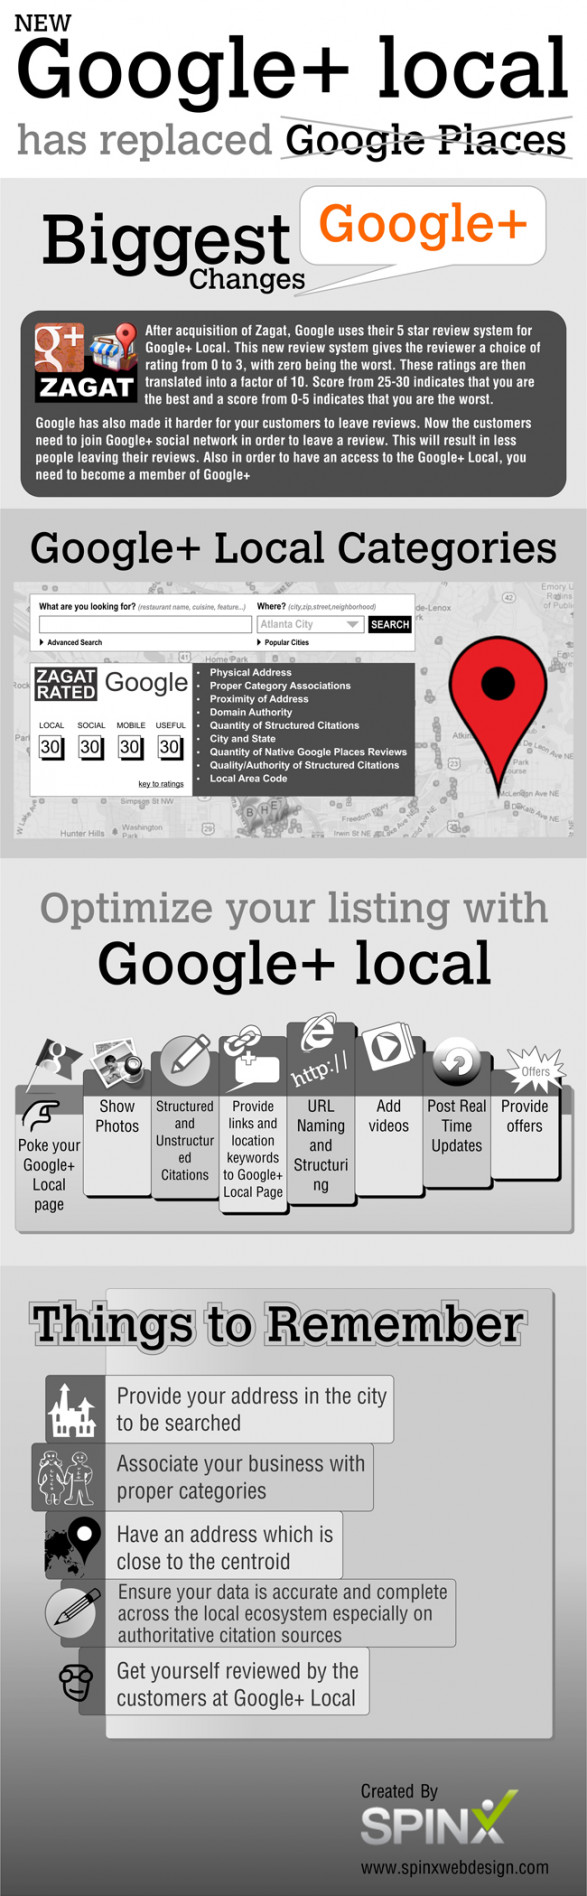 New Google Plus Local has Replaced Google Places